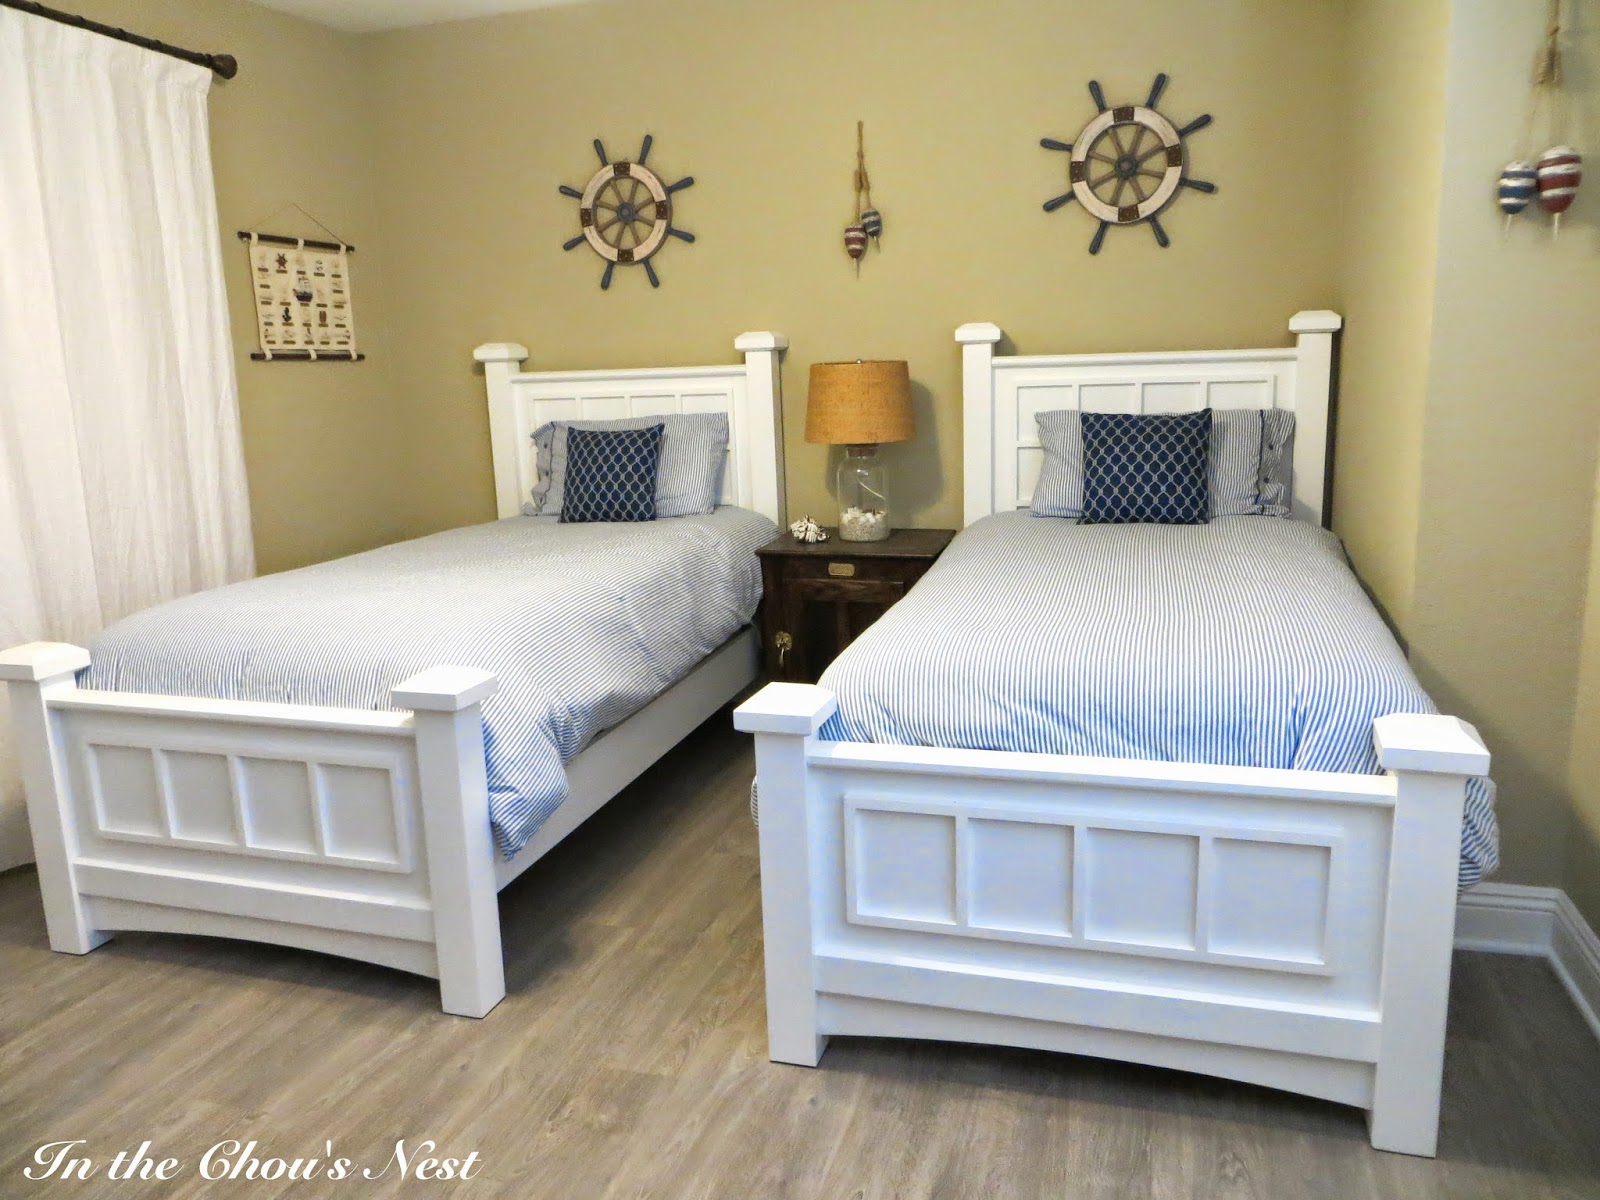 In The Chou's Nest: Our Home: Nautical Guest Bedroom